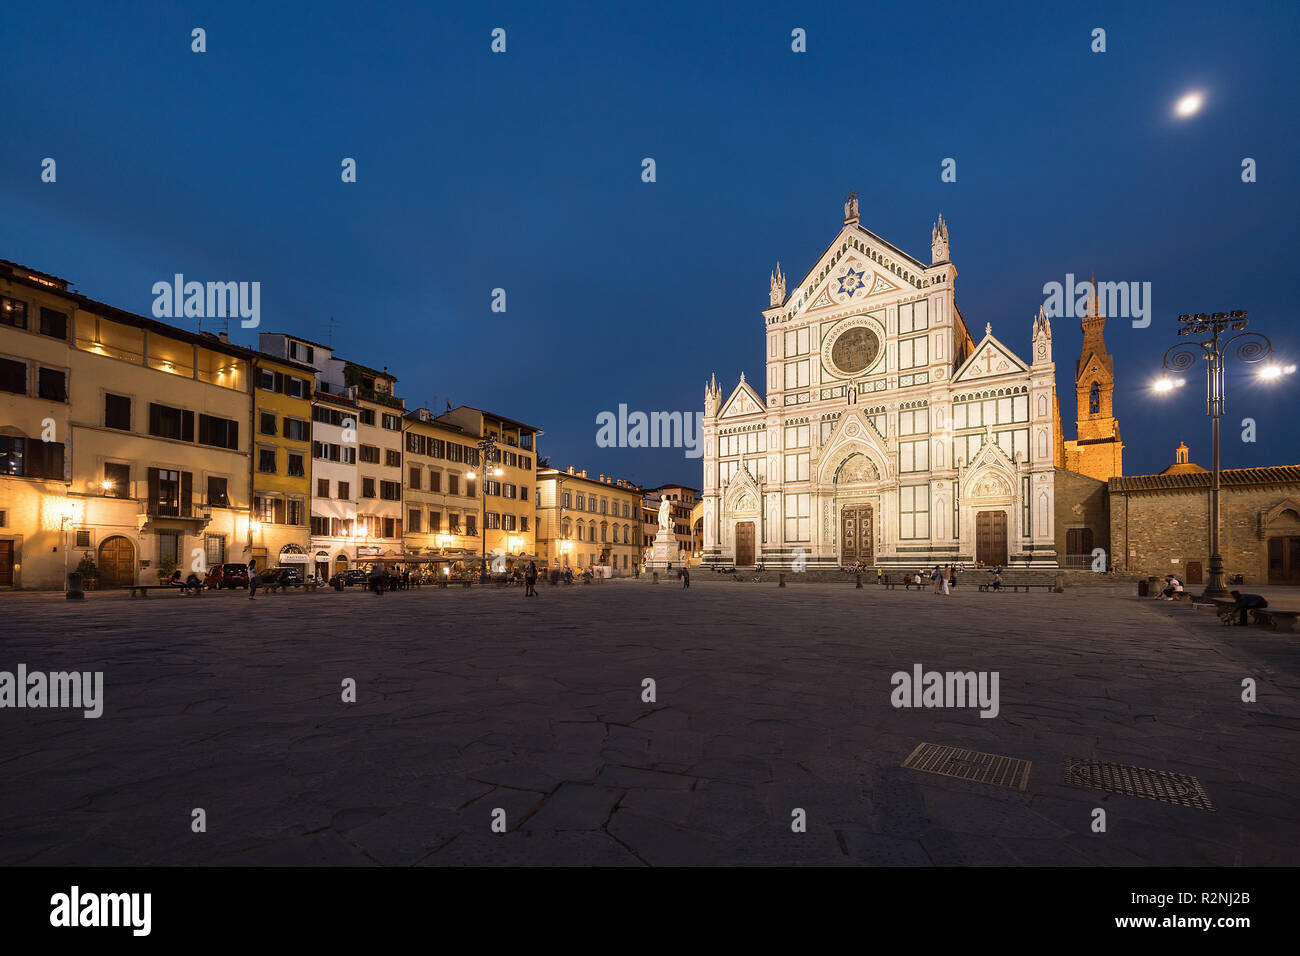 Florence, Piazza and Basilica di Santa Croce, blue hour - Stock Image